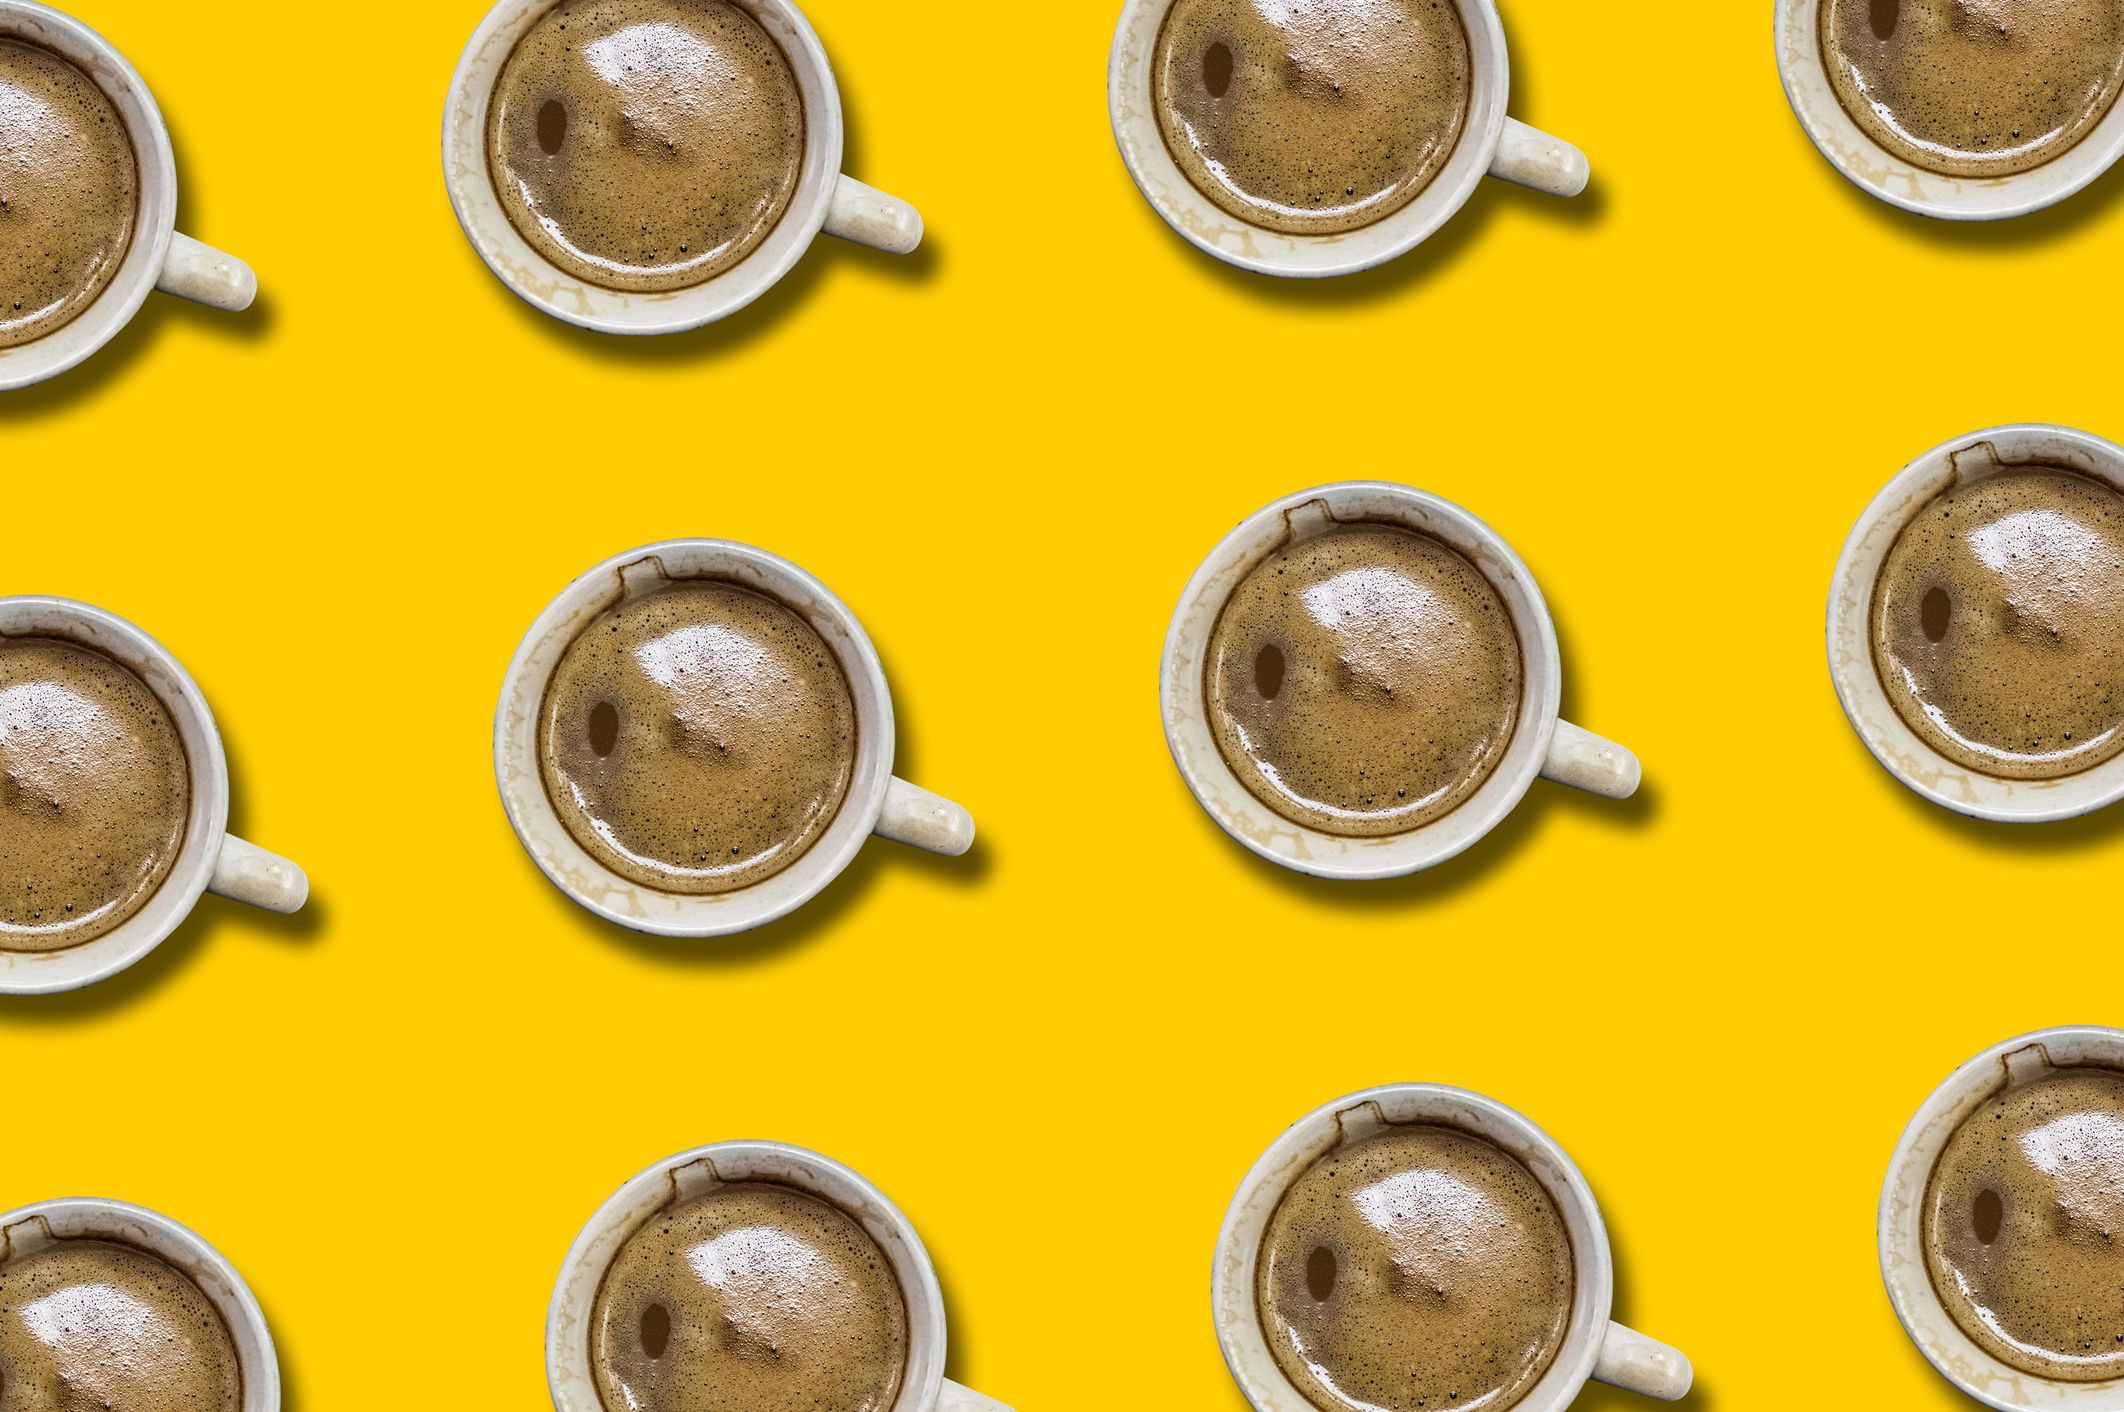 10 Ways To Make Your Coffee Healthier, According To Dietitians And Science